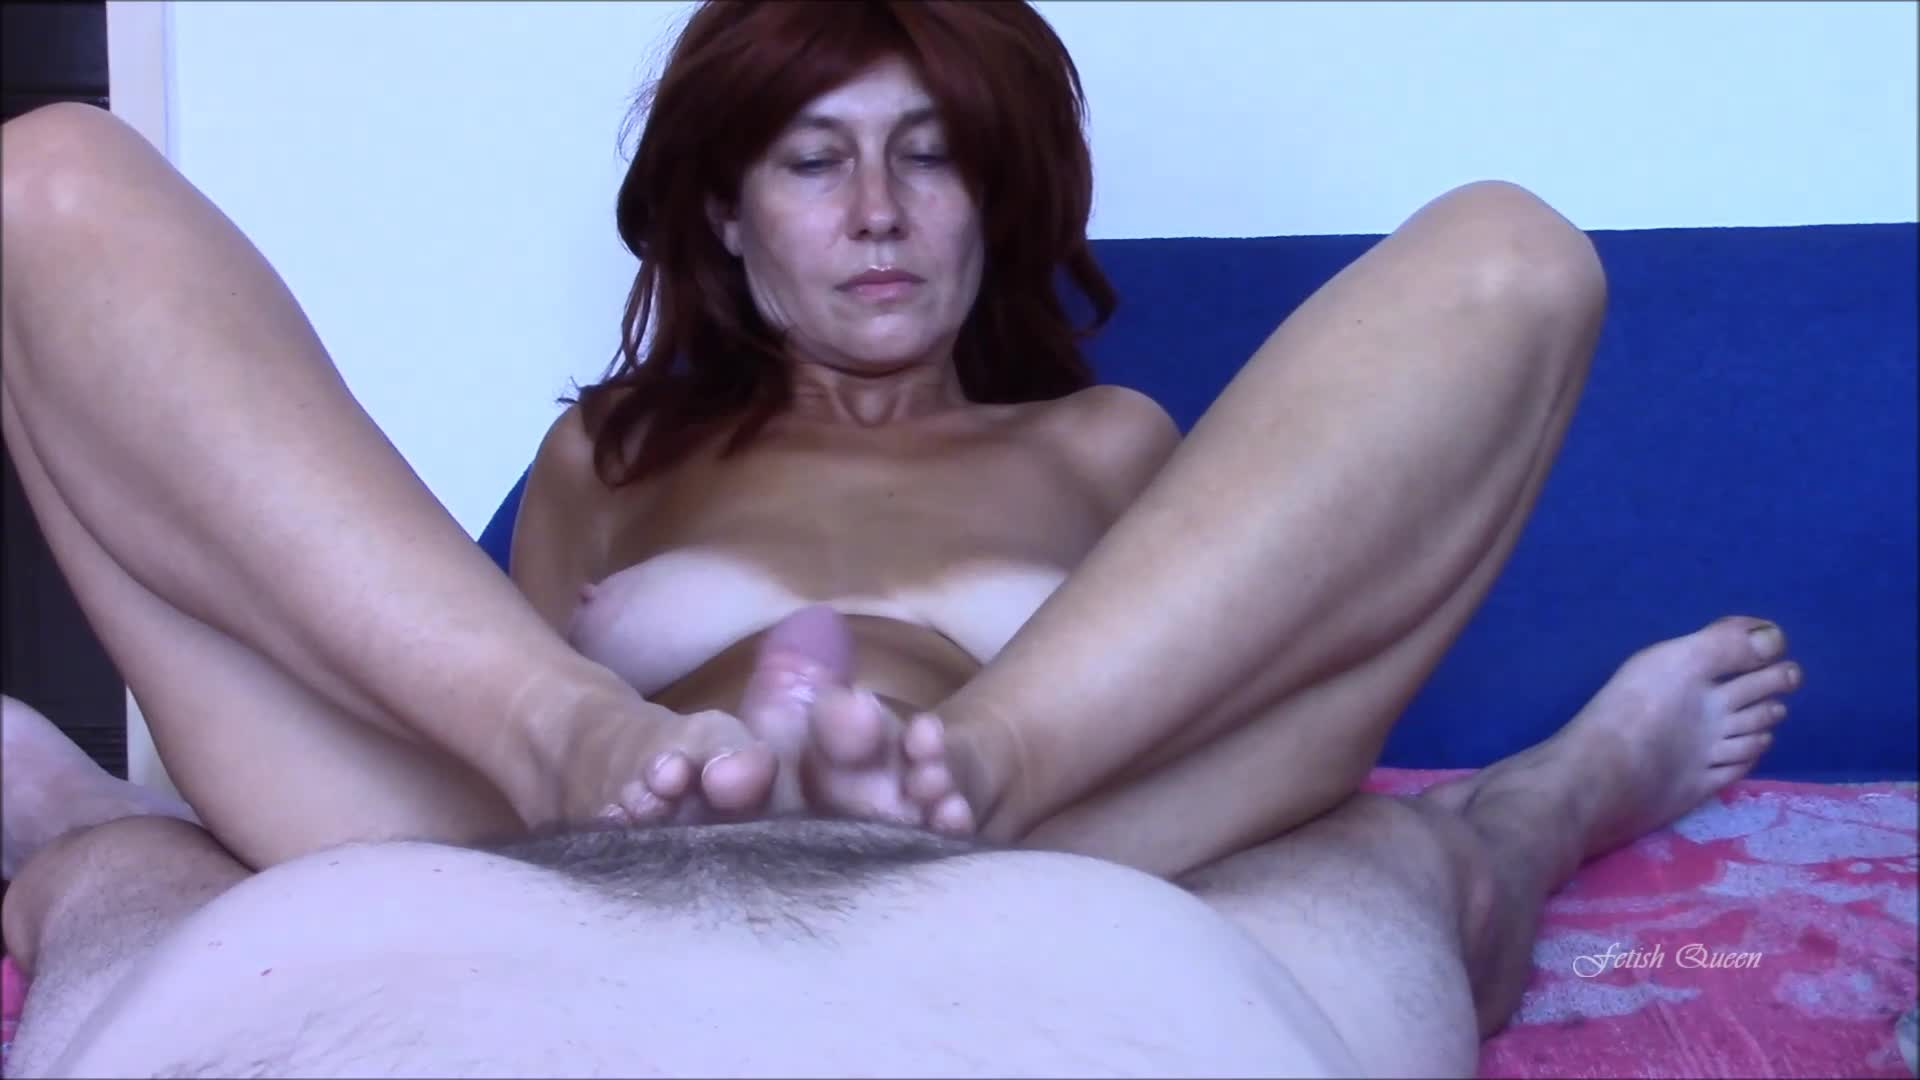 Fetish_Queen'd vid